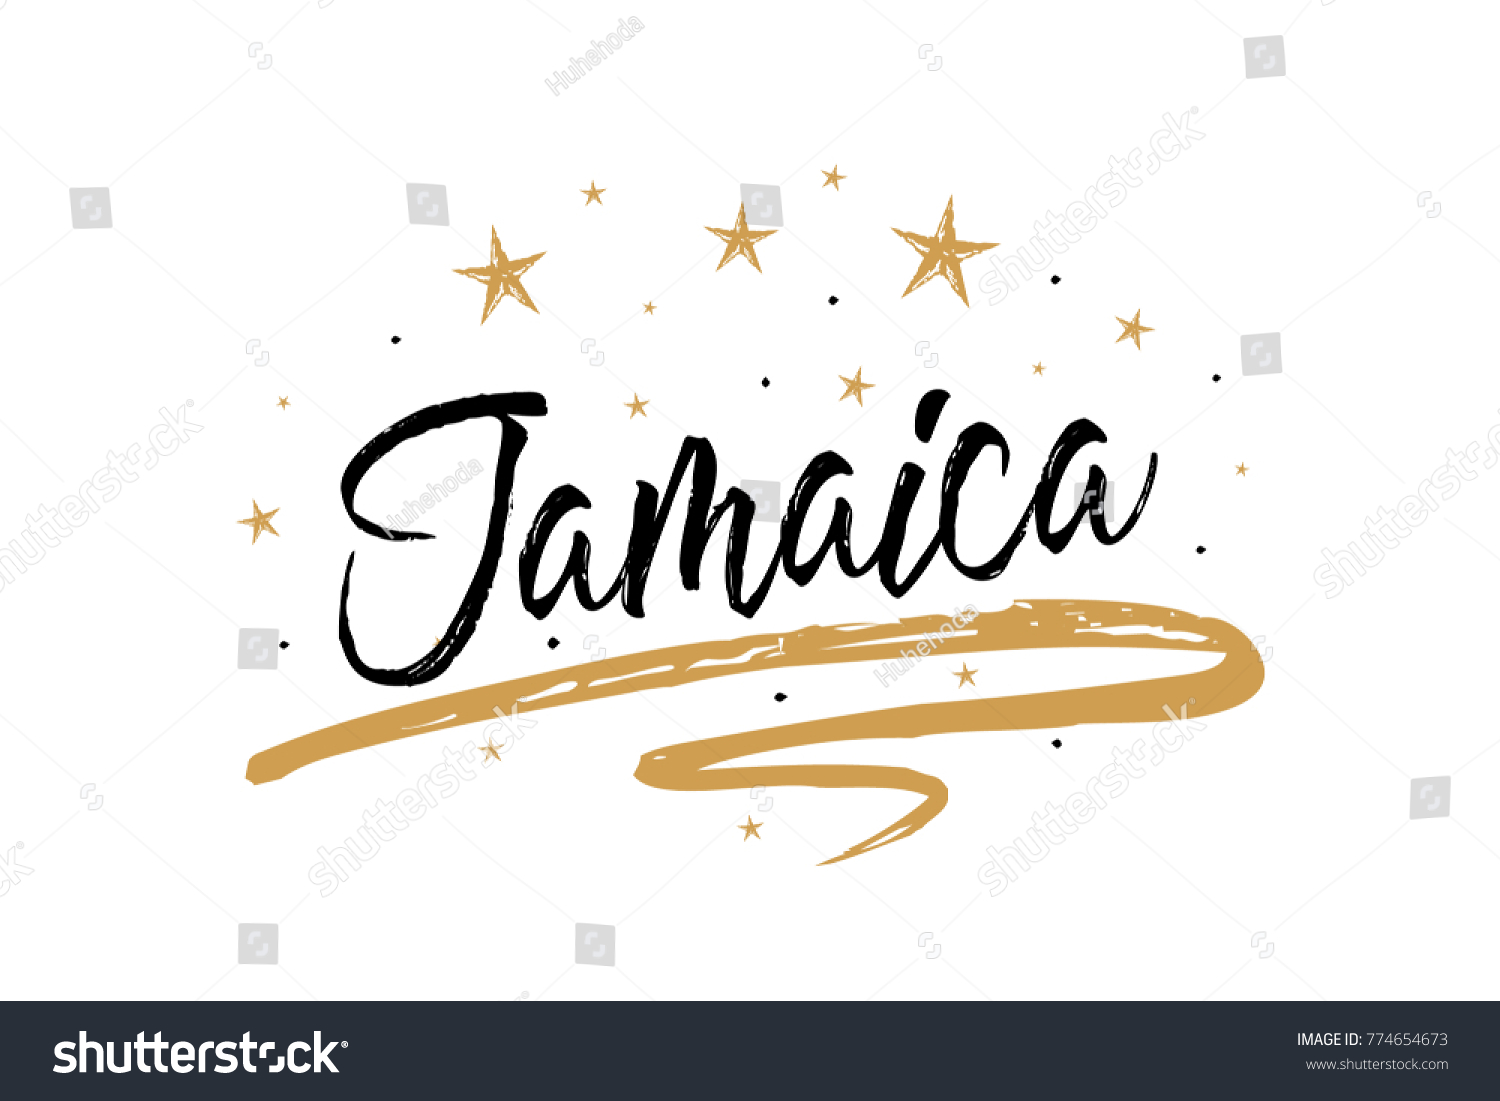 Jamaica Name Country Word Text Card Stock Vector Royalty Free